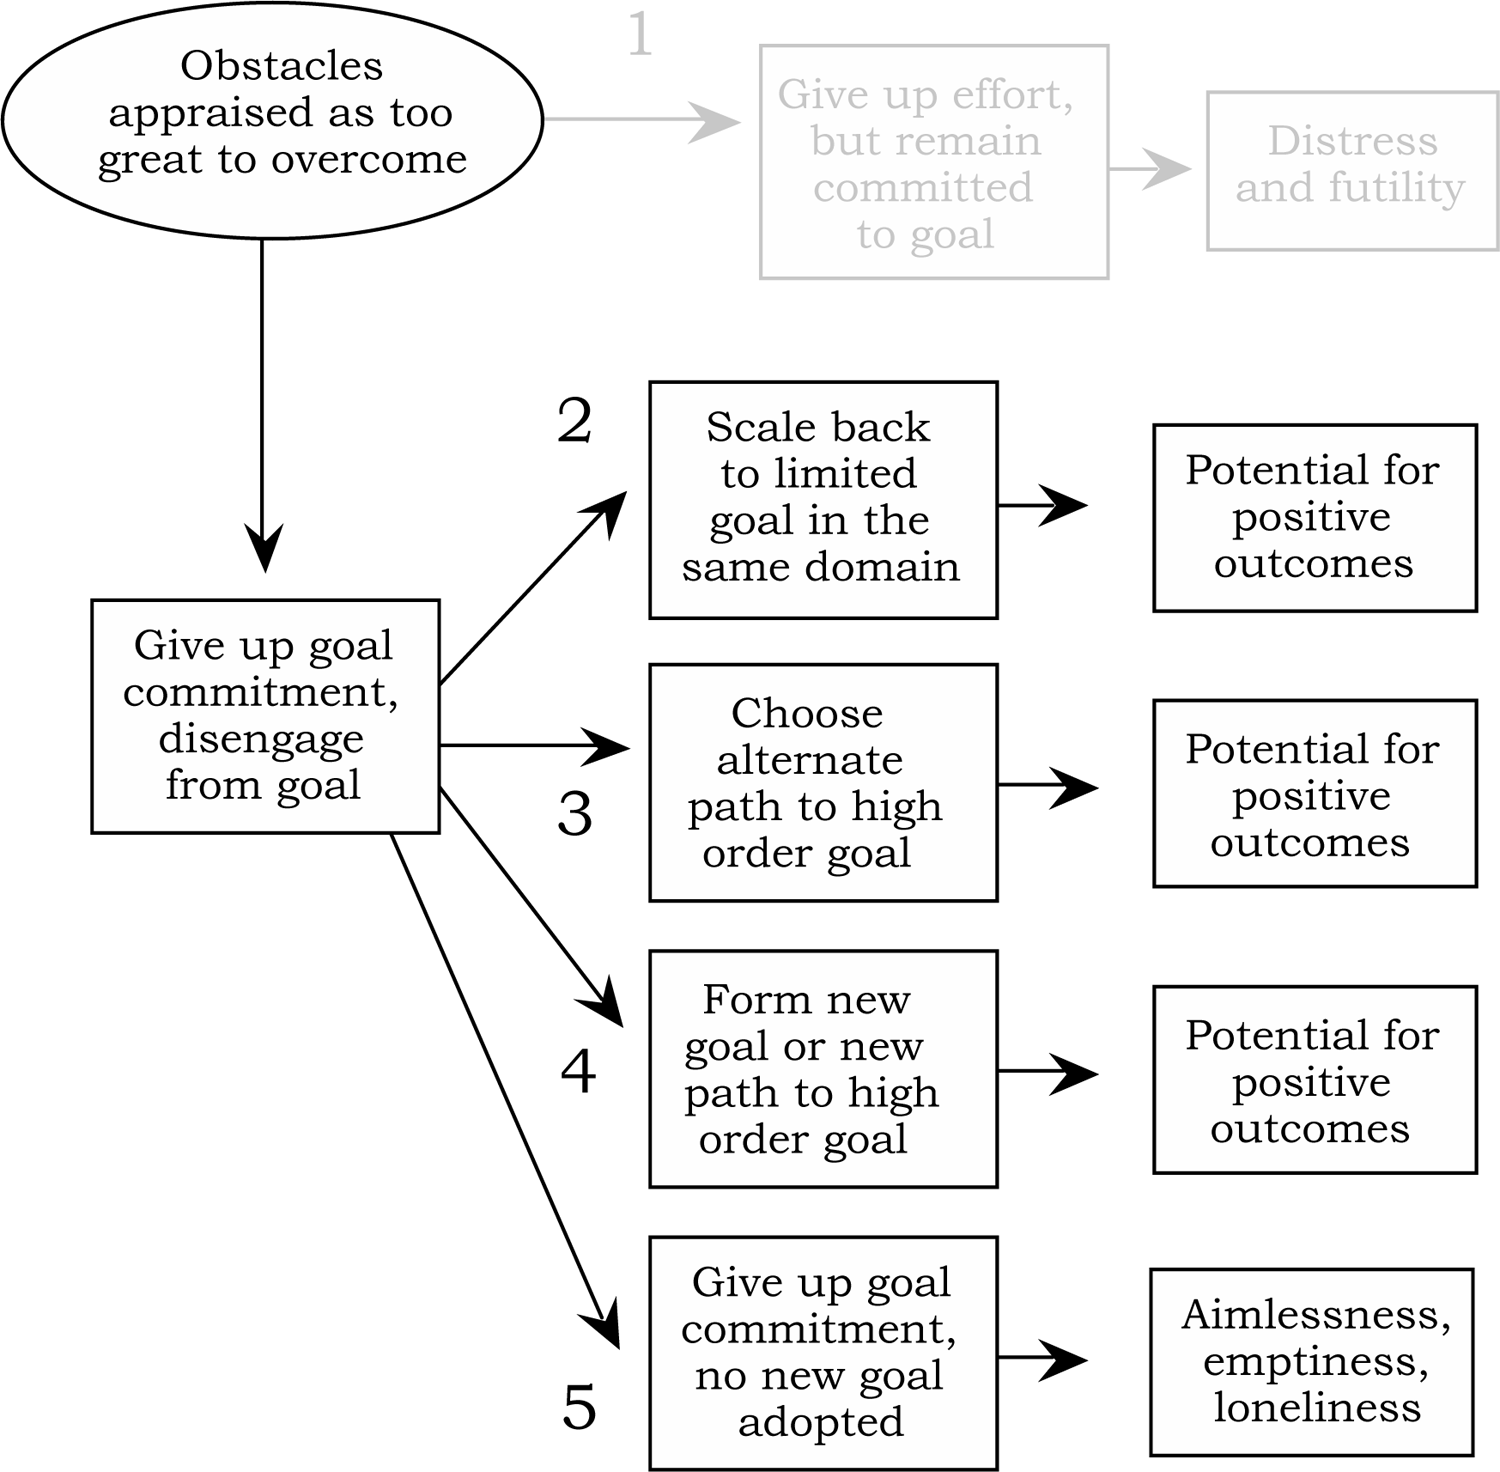 6 C. Wrosch et al. FIGURE 2 Consequences of four potential patterns of disengaging from a previously held goal (building on Figure 1).